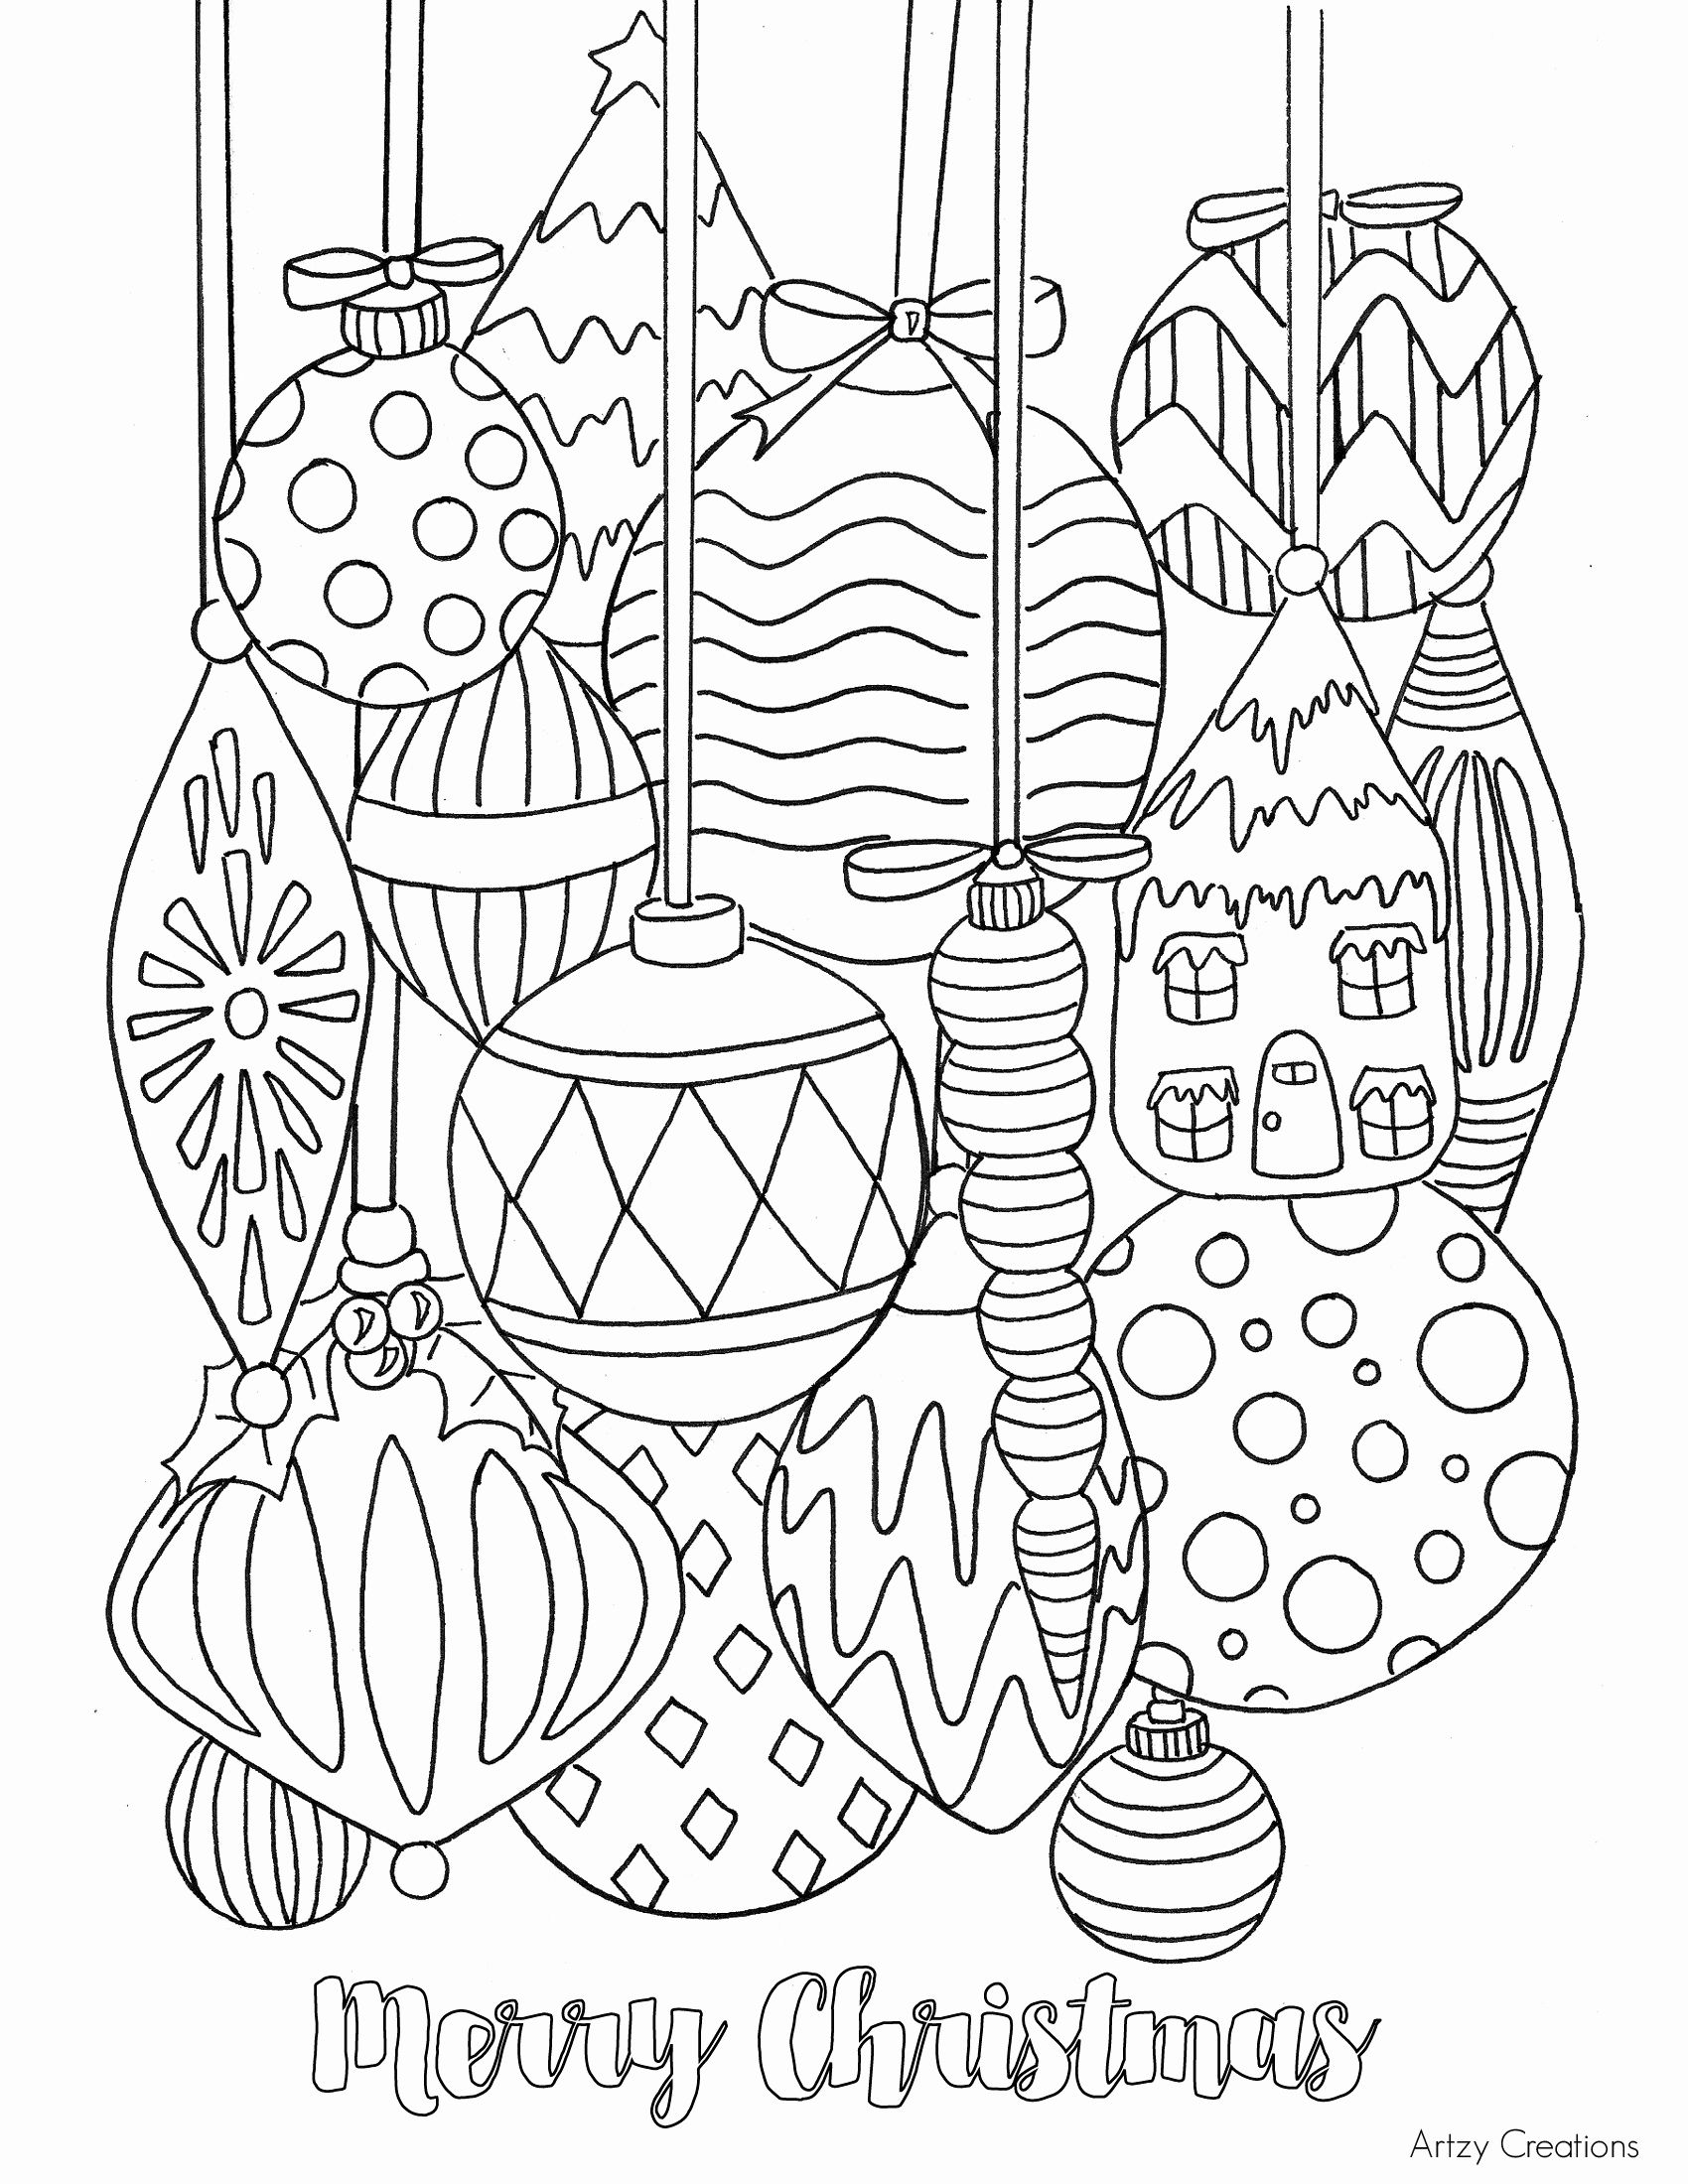 Coloring Pages Christmas Ornaments Printable Luxury Christmas Ornamen Free Christmas Coloring Pages Printable Christmas Coloring Pages Christmas Coloring Books